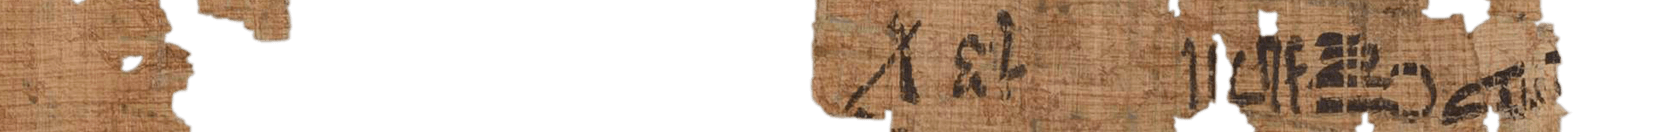 the Turin king list 4.25 (photo of the hieratic text)